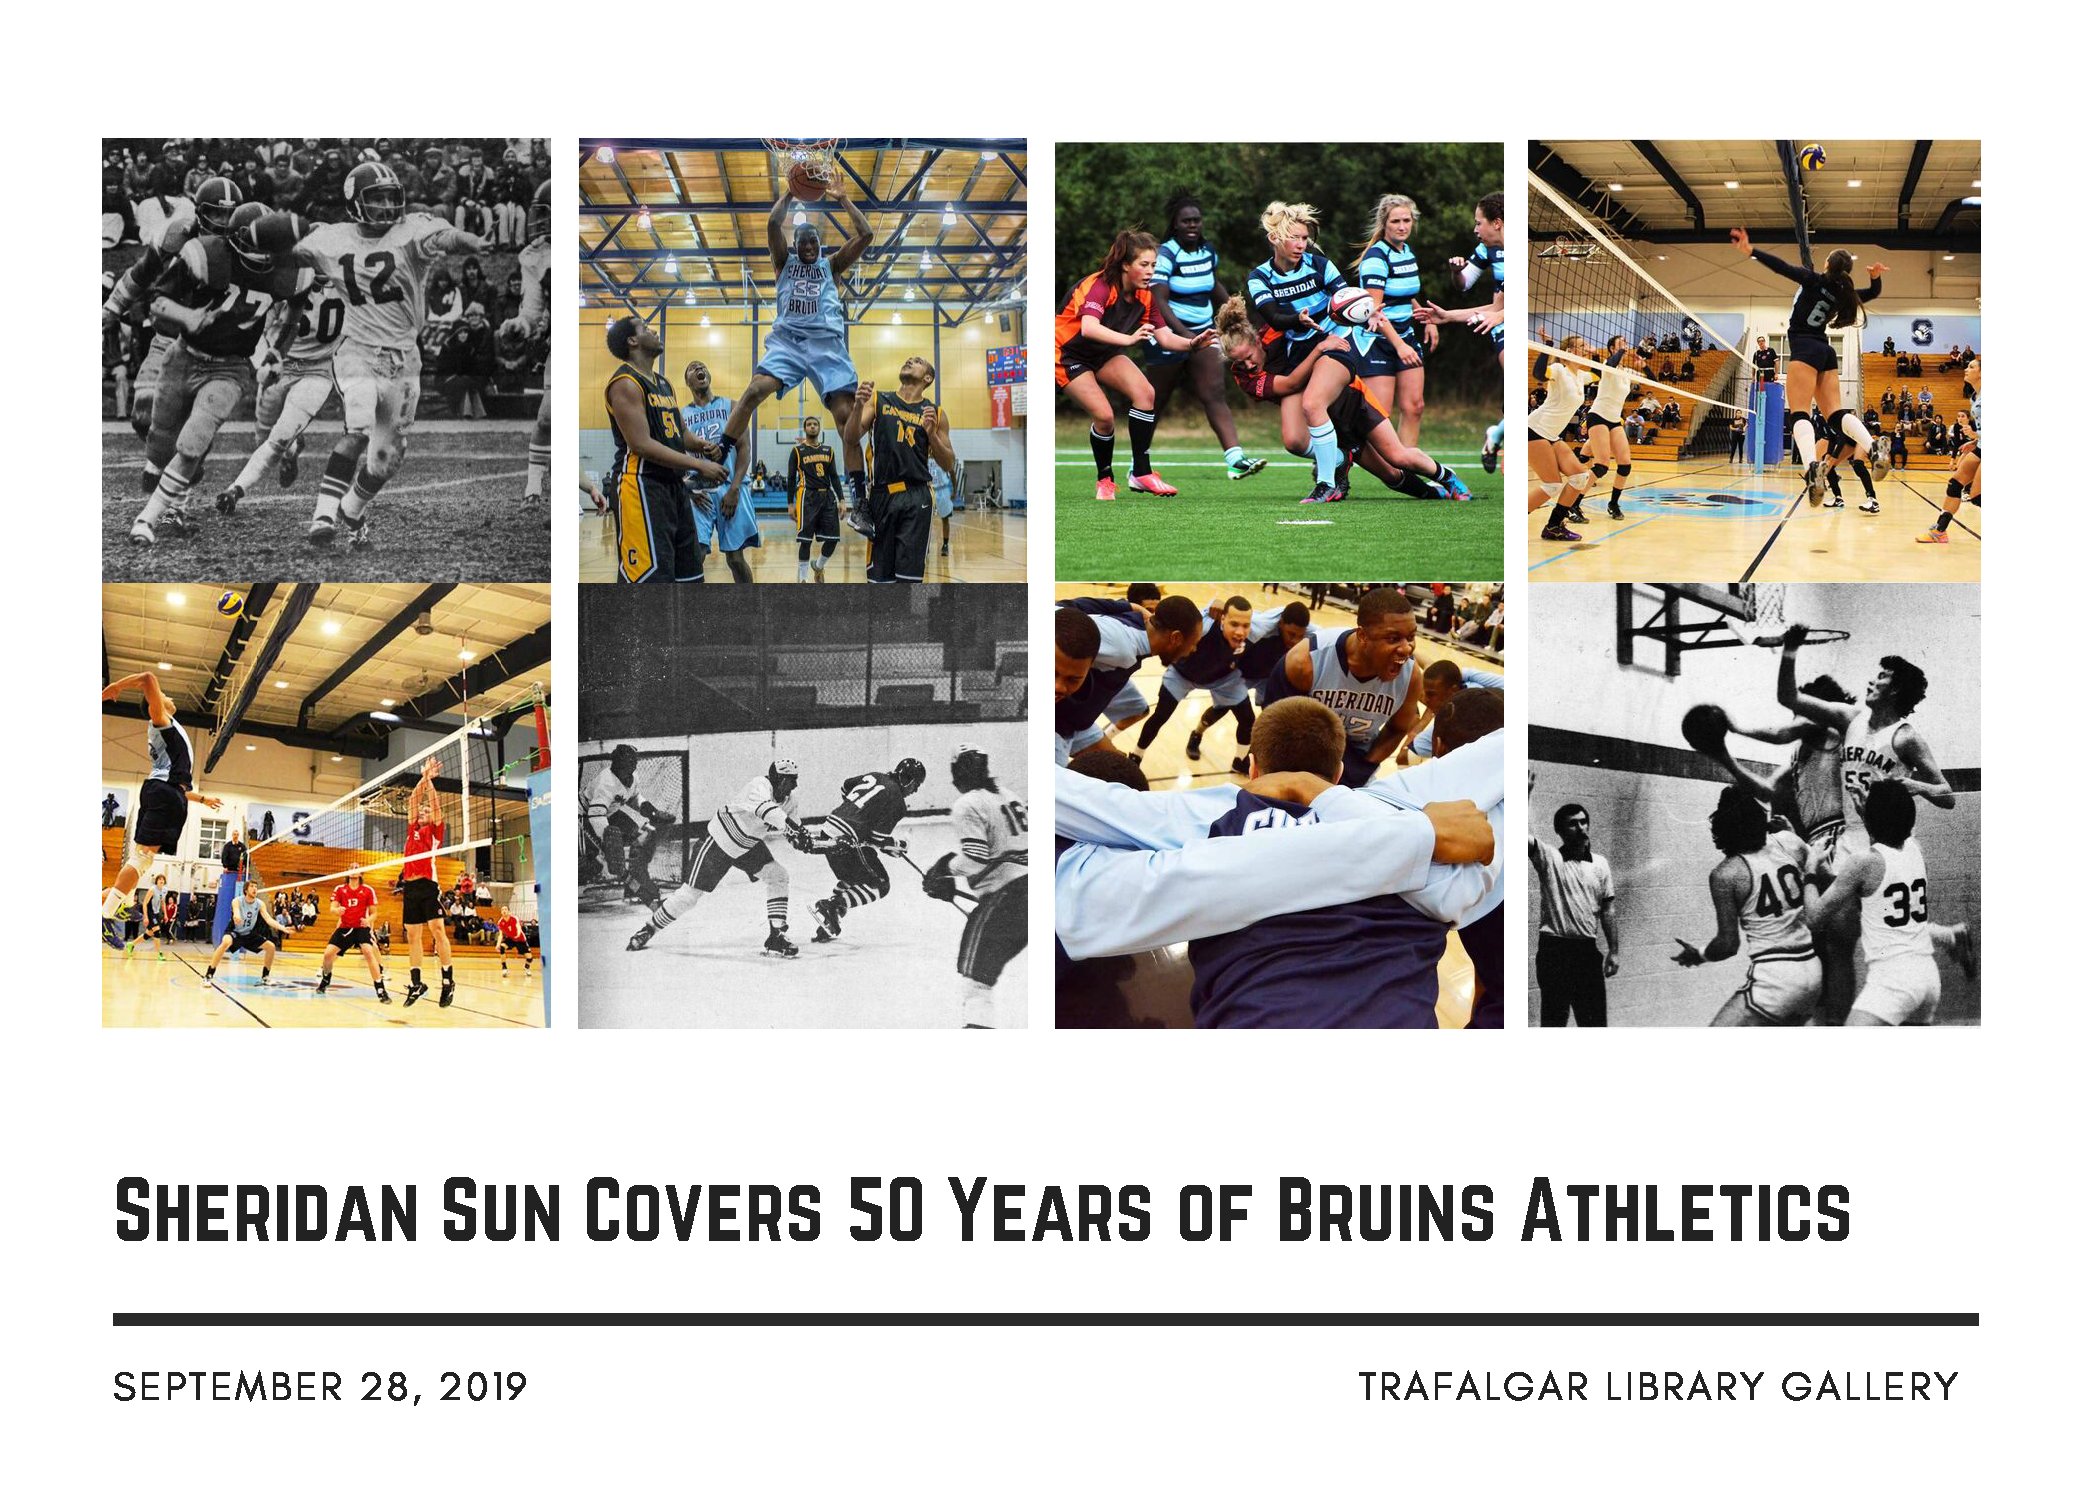 50 Years of Bruins Athletics